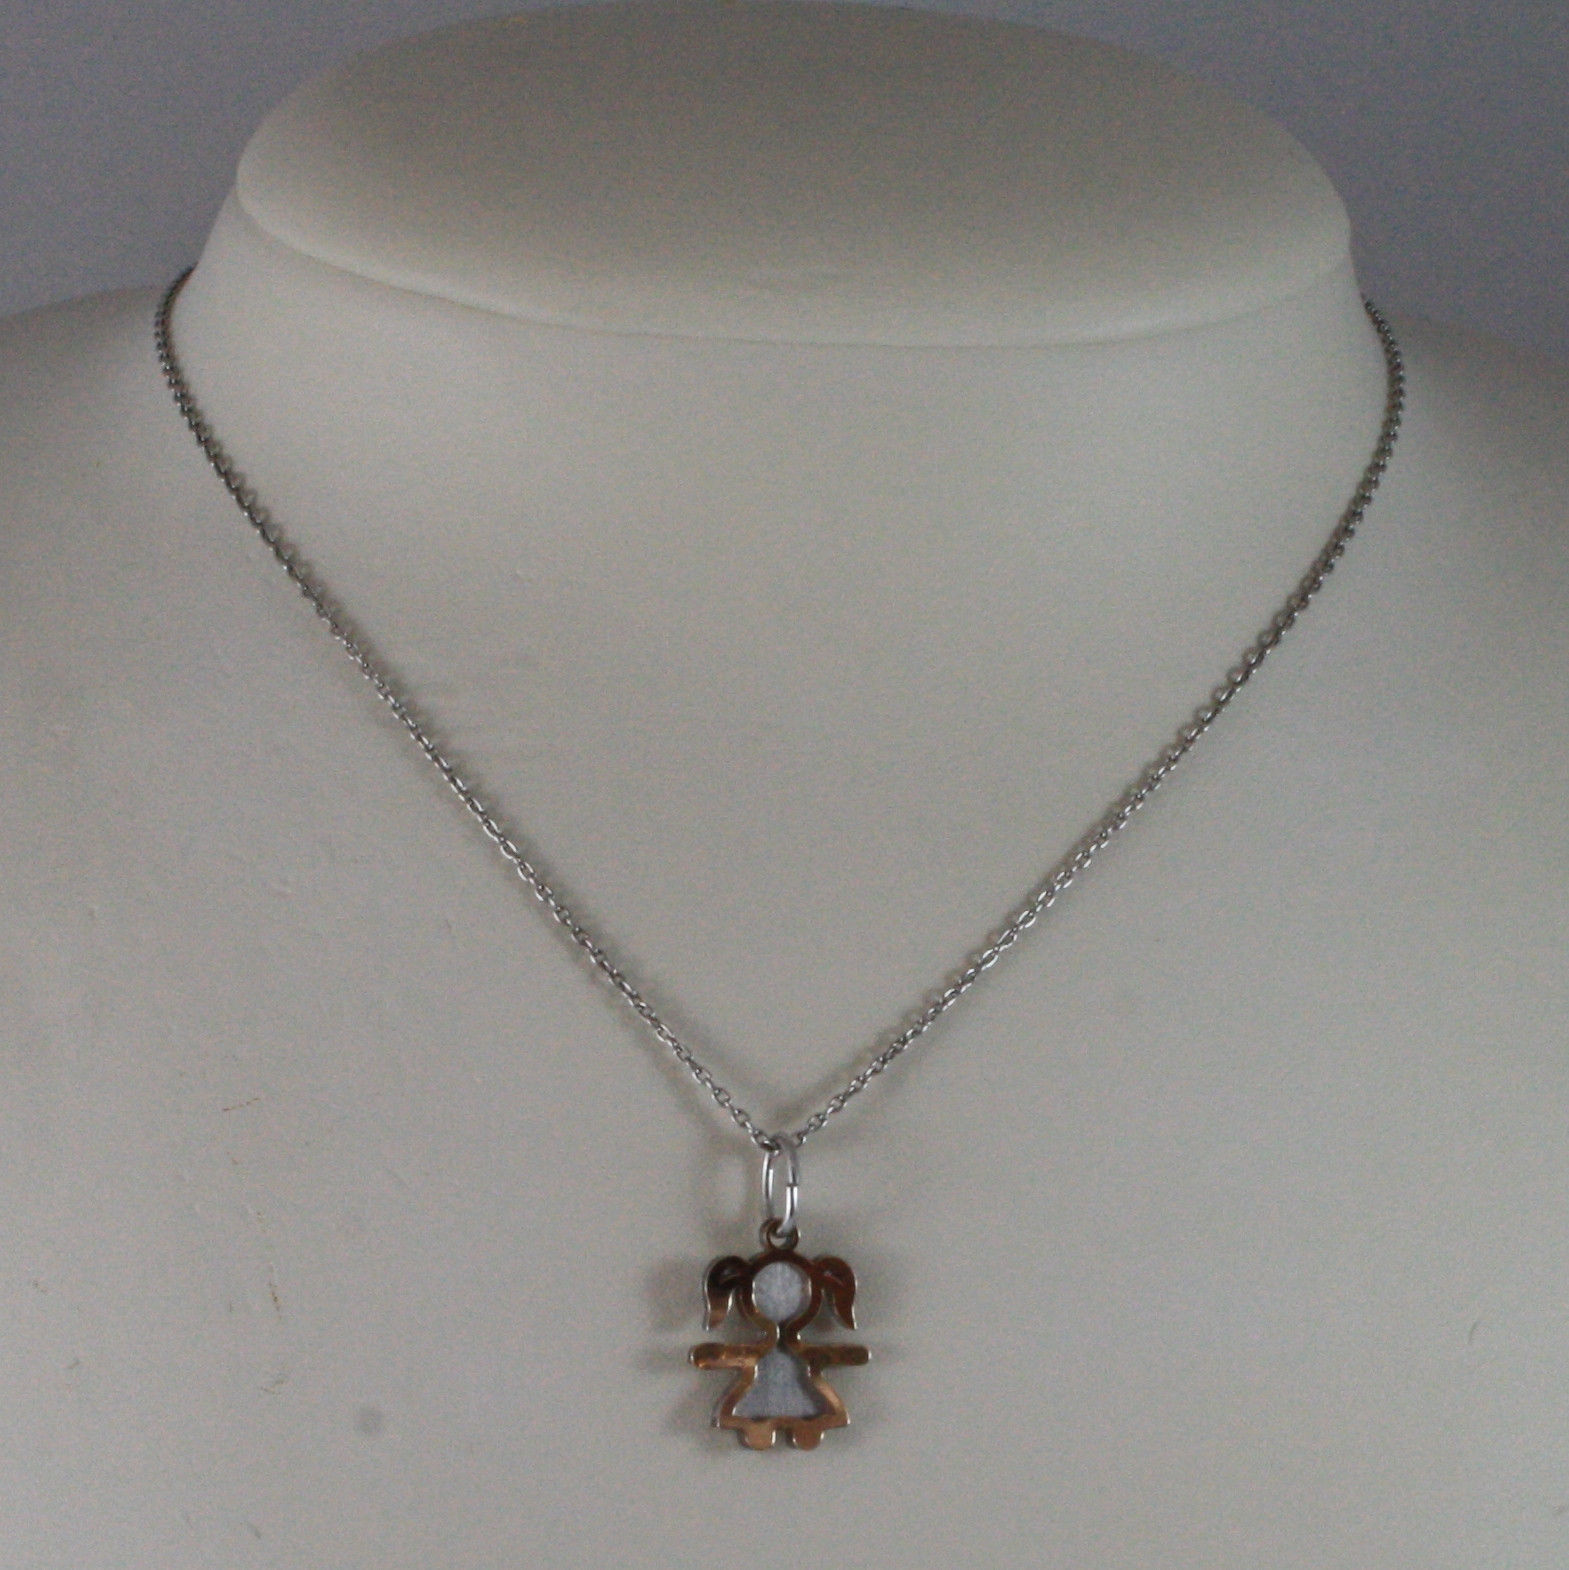 .925 SILVER RHODIUM NECKLACE WITH SATIN AND ROSE GOLD PLATED DOUBLE GIRL PENDANT